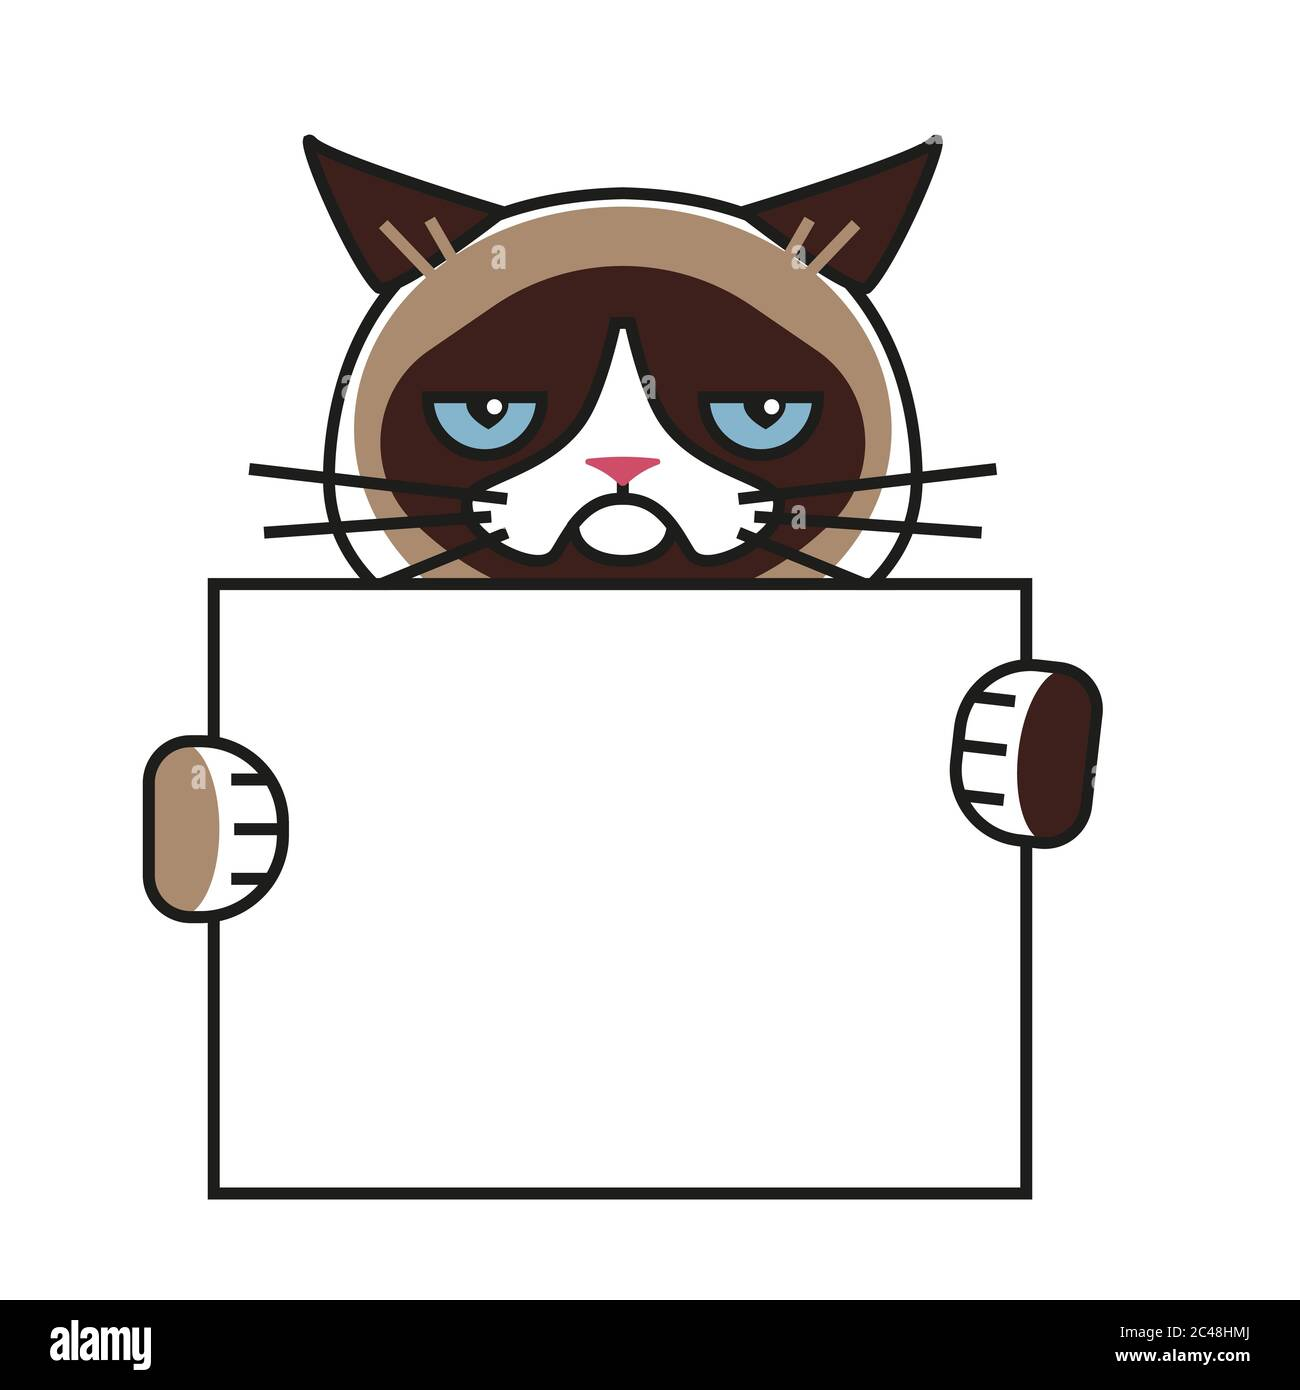 Cartoon Angry Cat High Resolution Stock Photography And Images Alamy